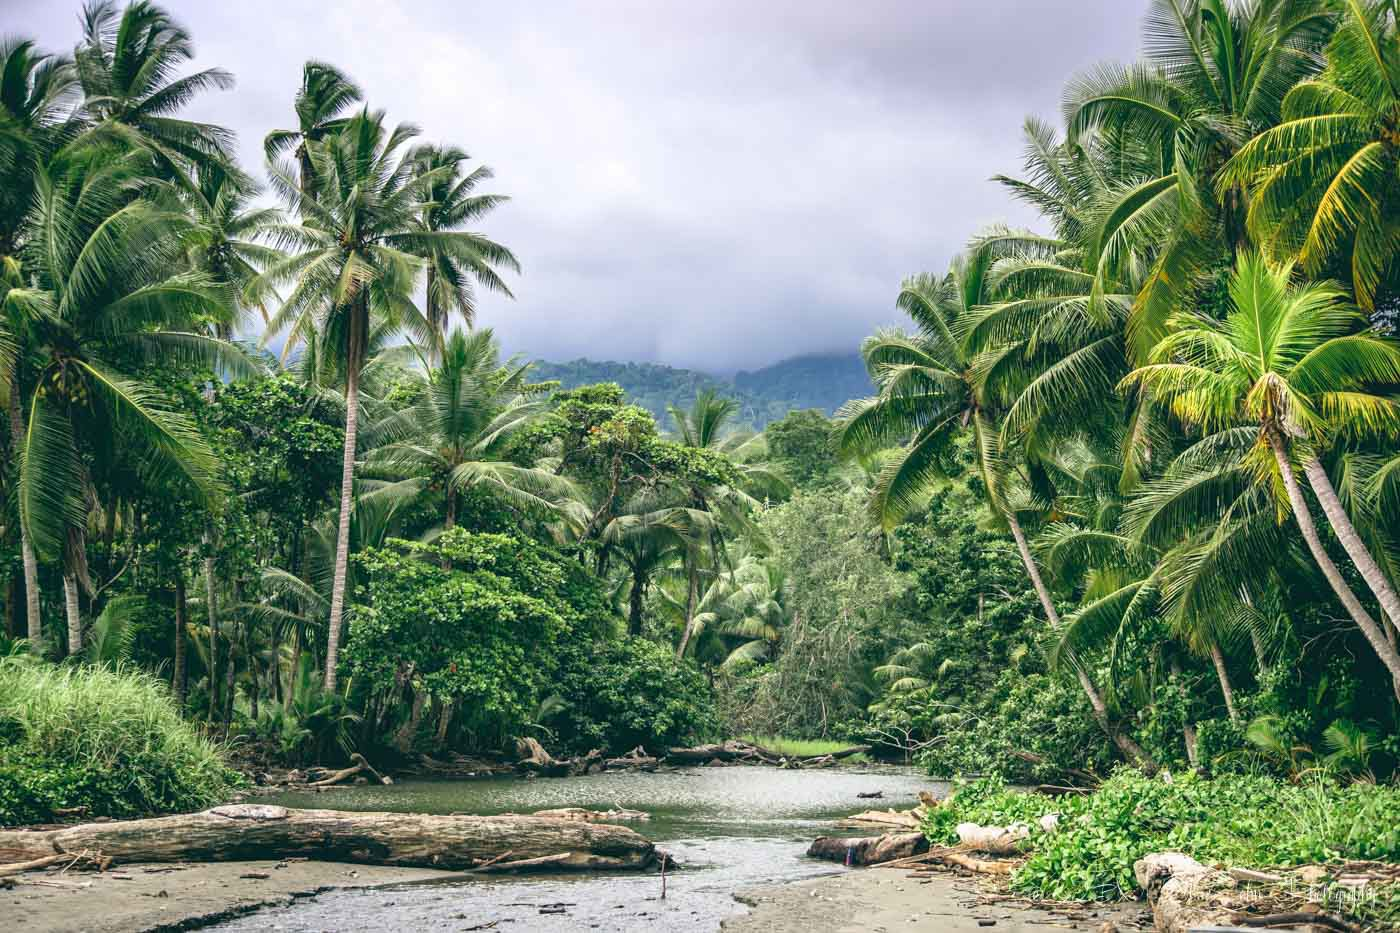 Costa Rica Travel Tip: The great jungle of Costa Rica